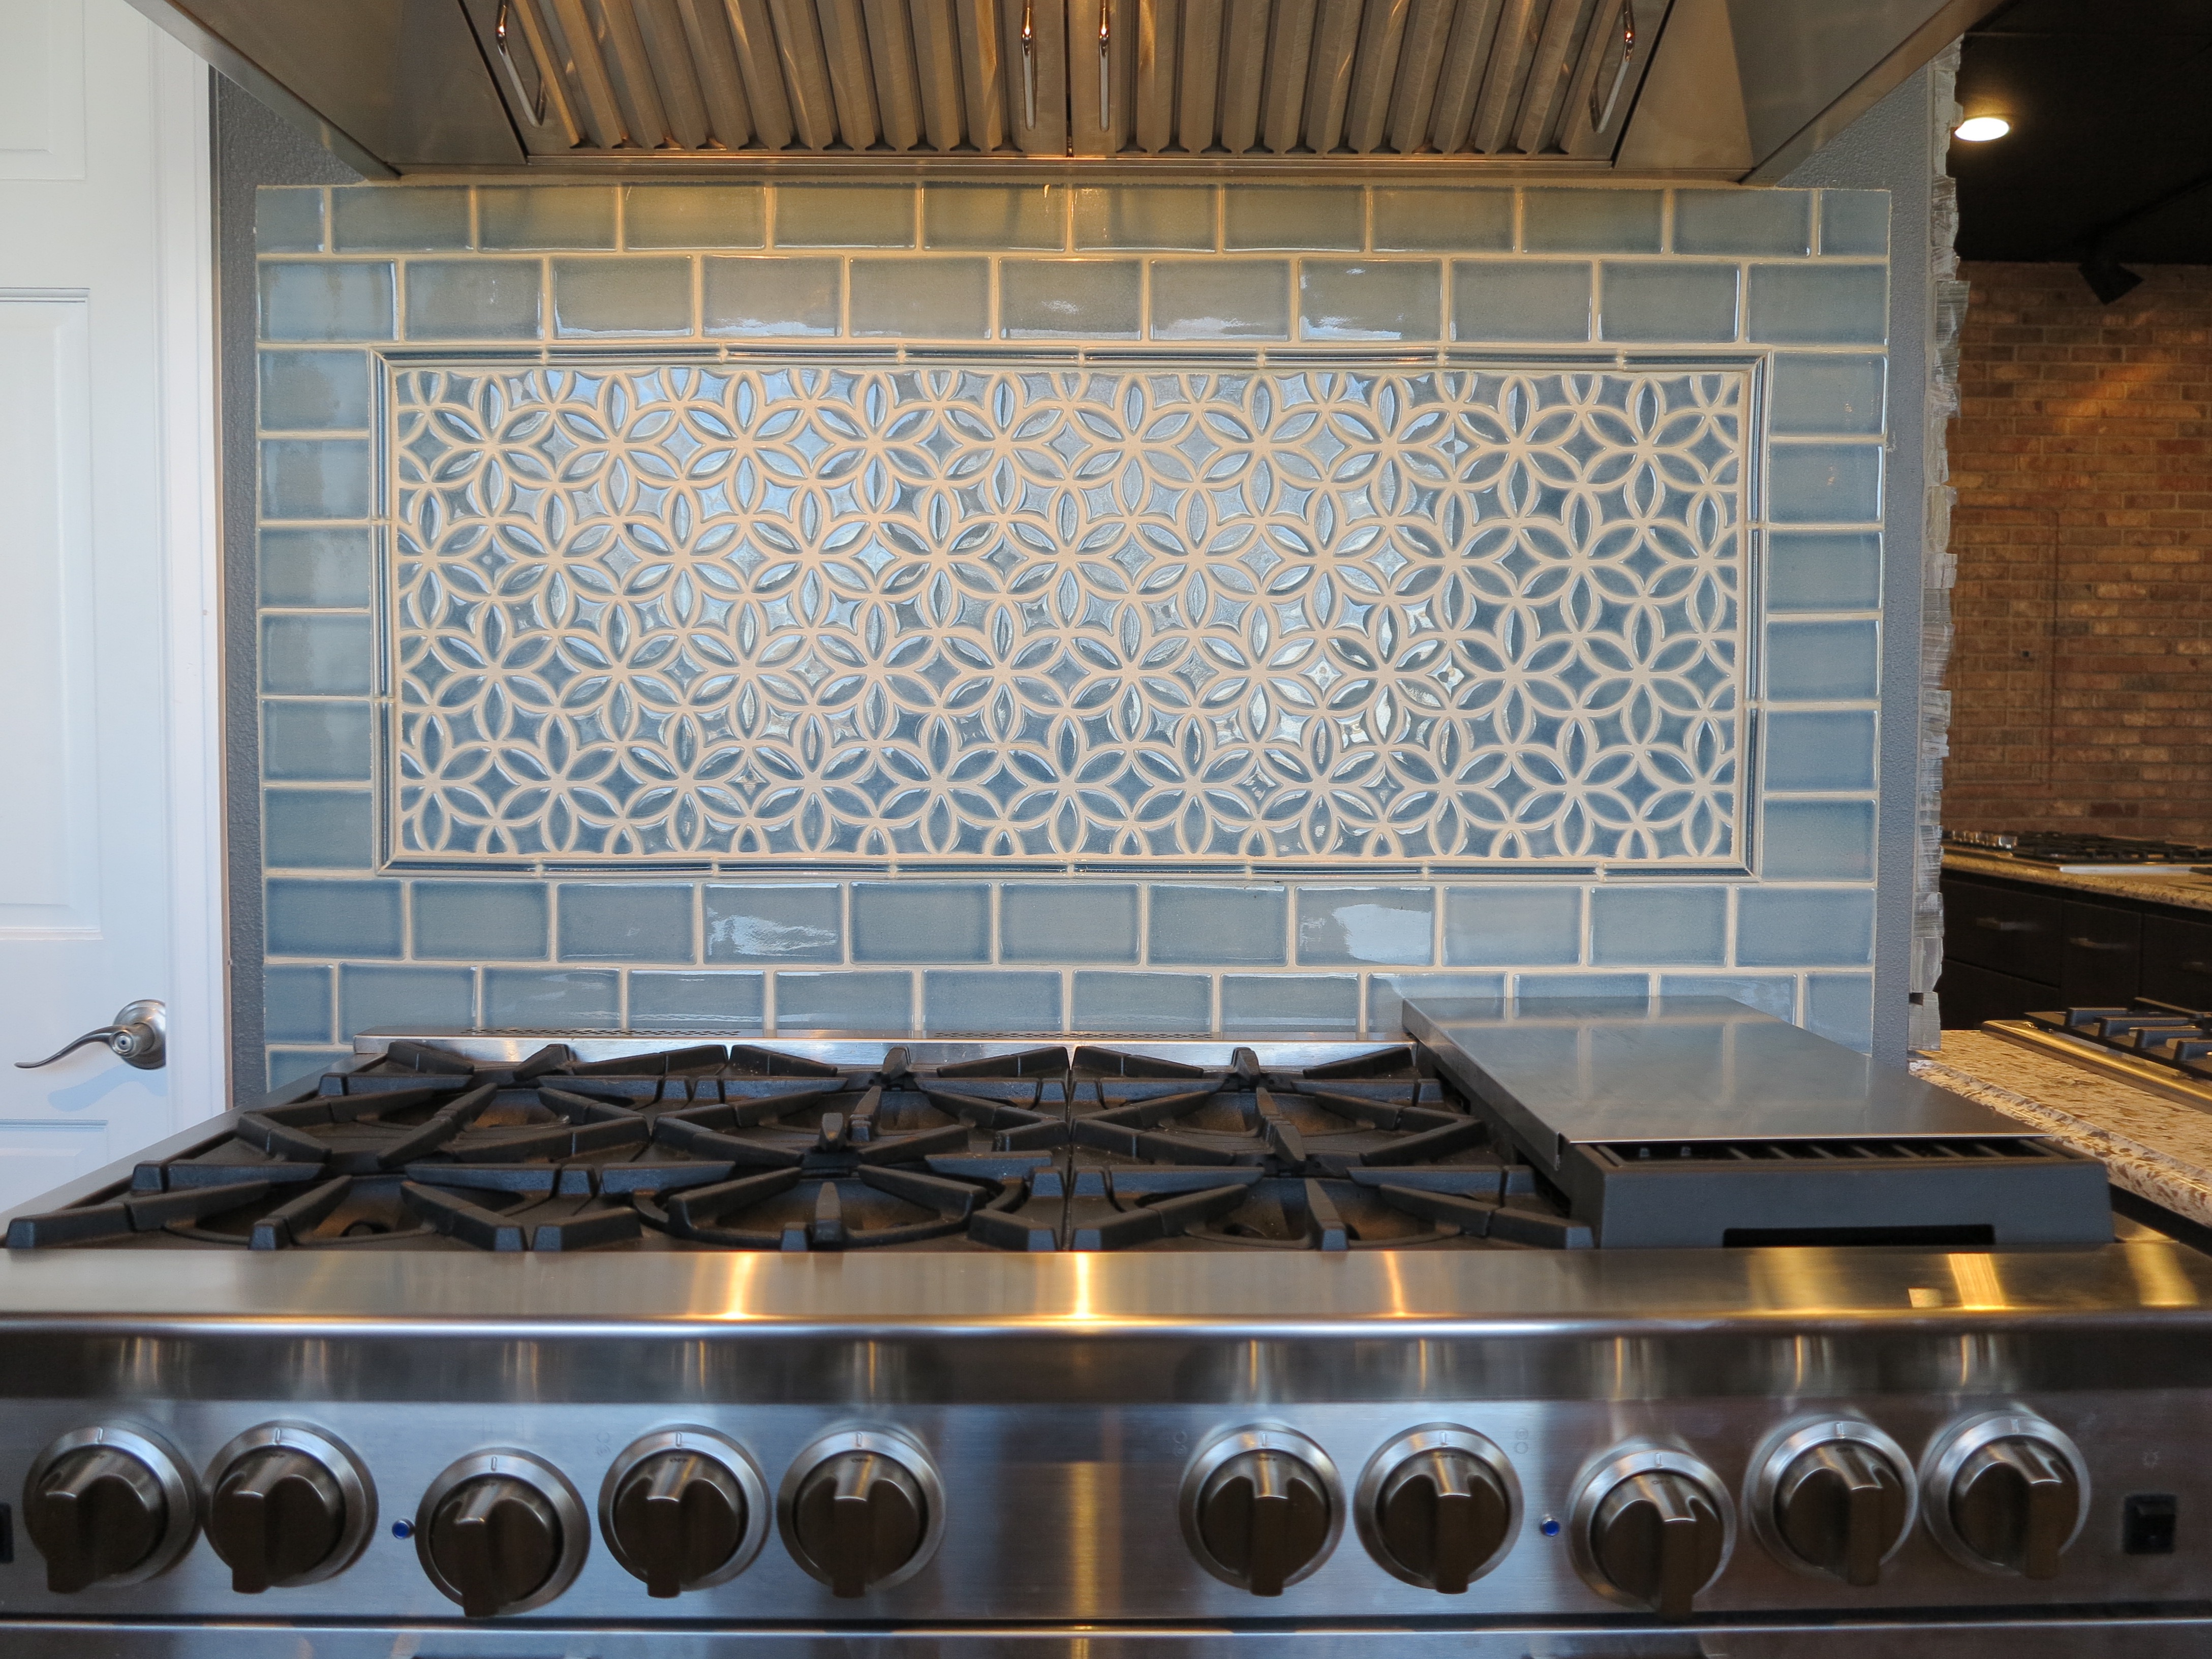 Two fresh new kitchens made from scratch julep tile company kitchen 2 dailygadgetfo Choice Image